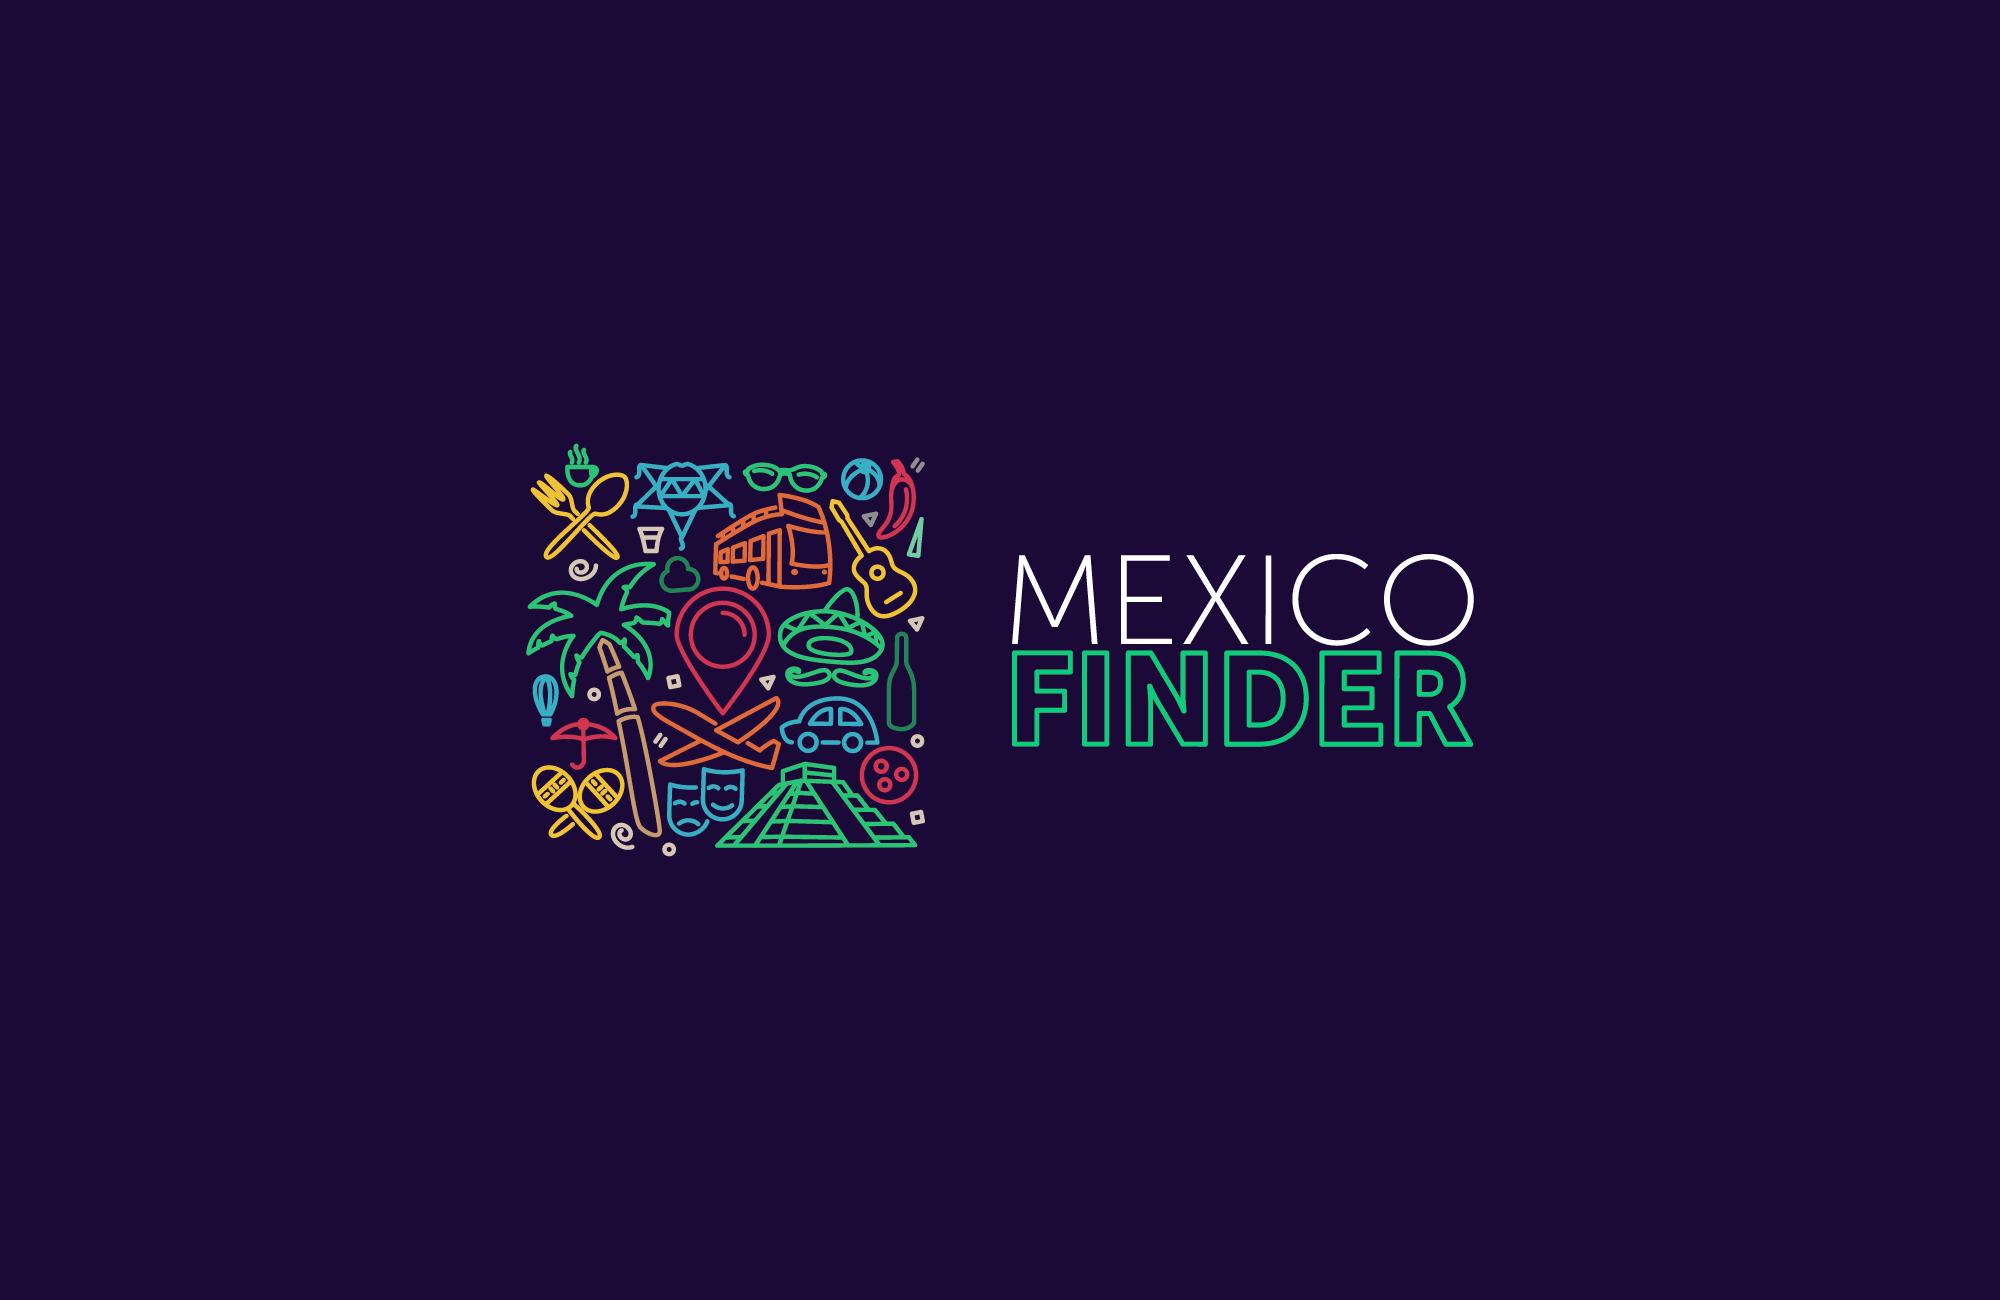 boom-agencia-marketing-digital-branding-mexicofinder-logo